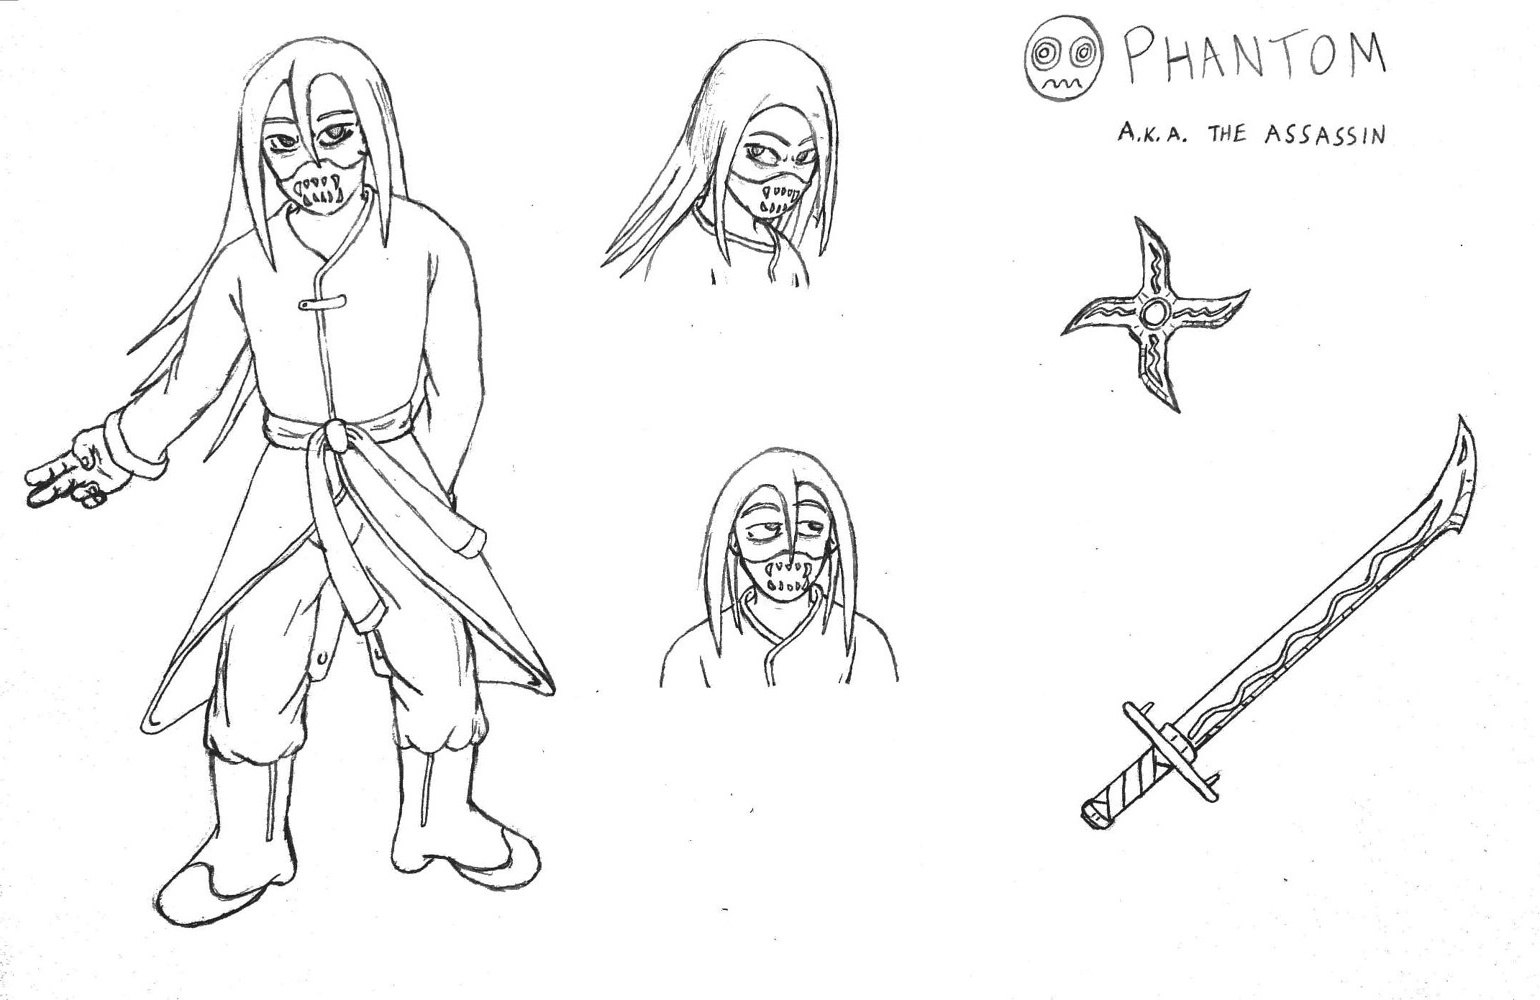 Phantom - Model Sheet by Jordan Woodard